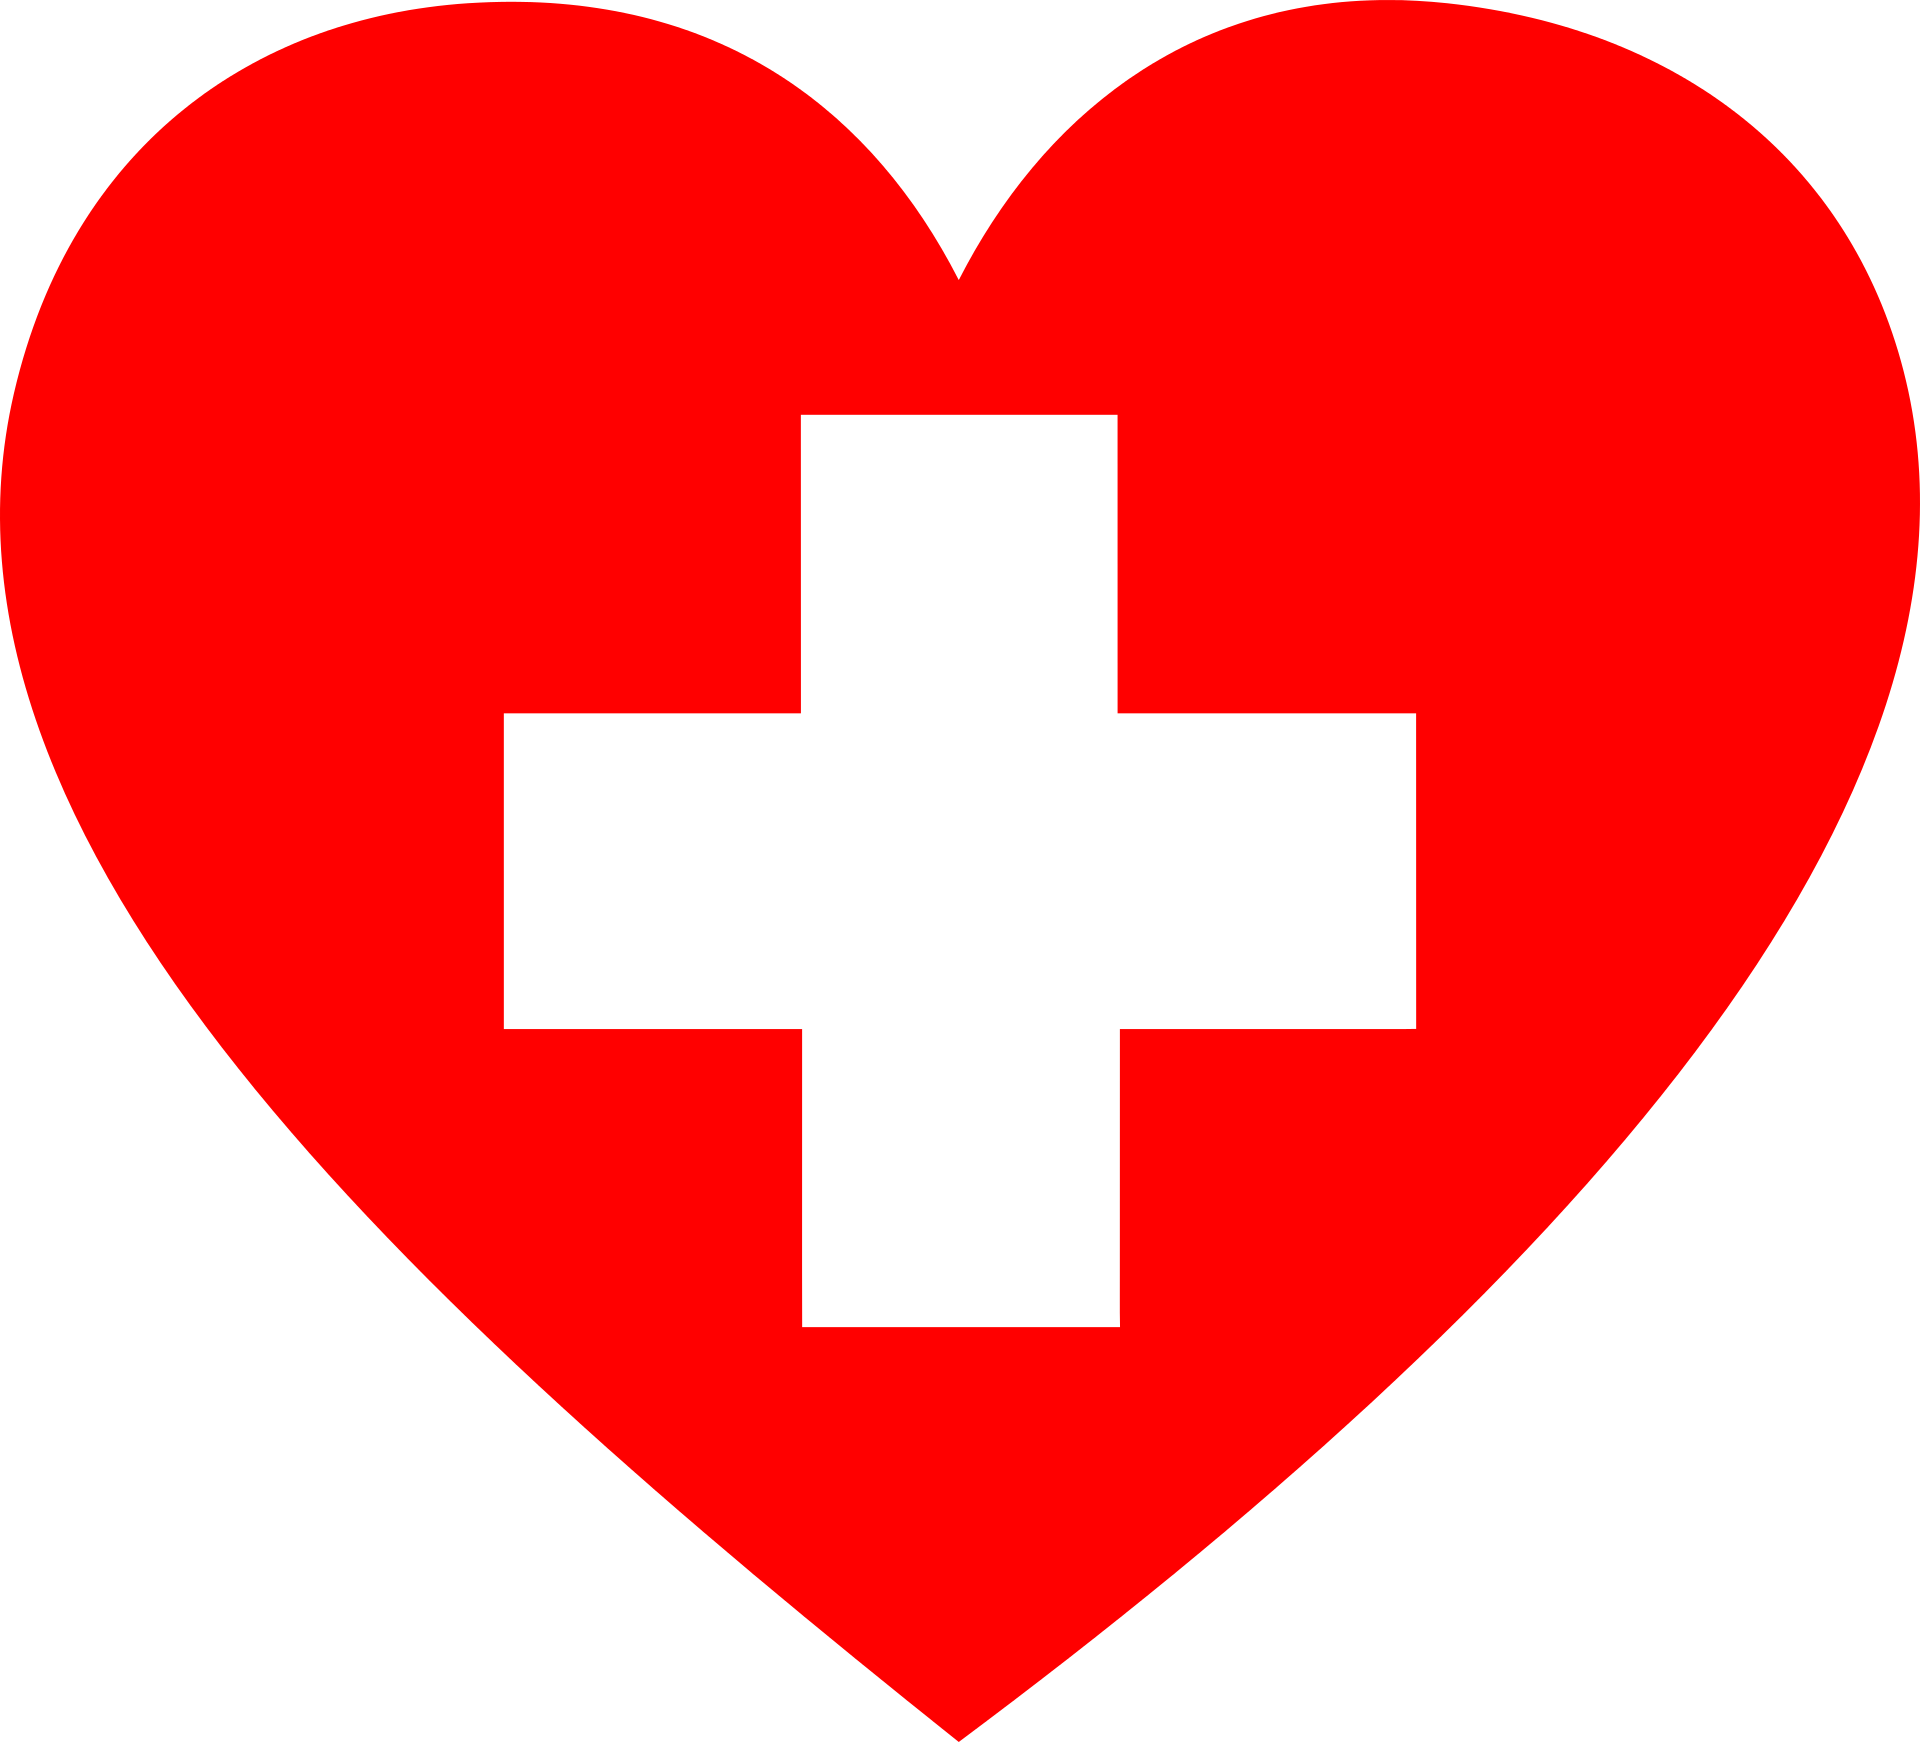 Heart with First Aid Symbol